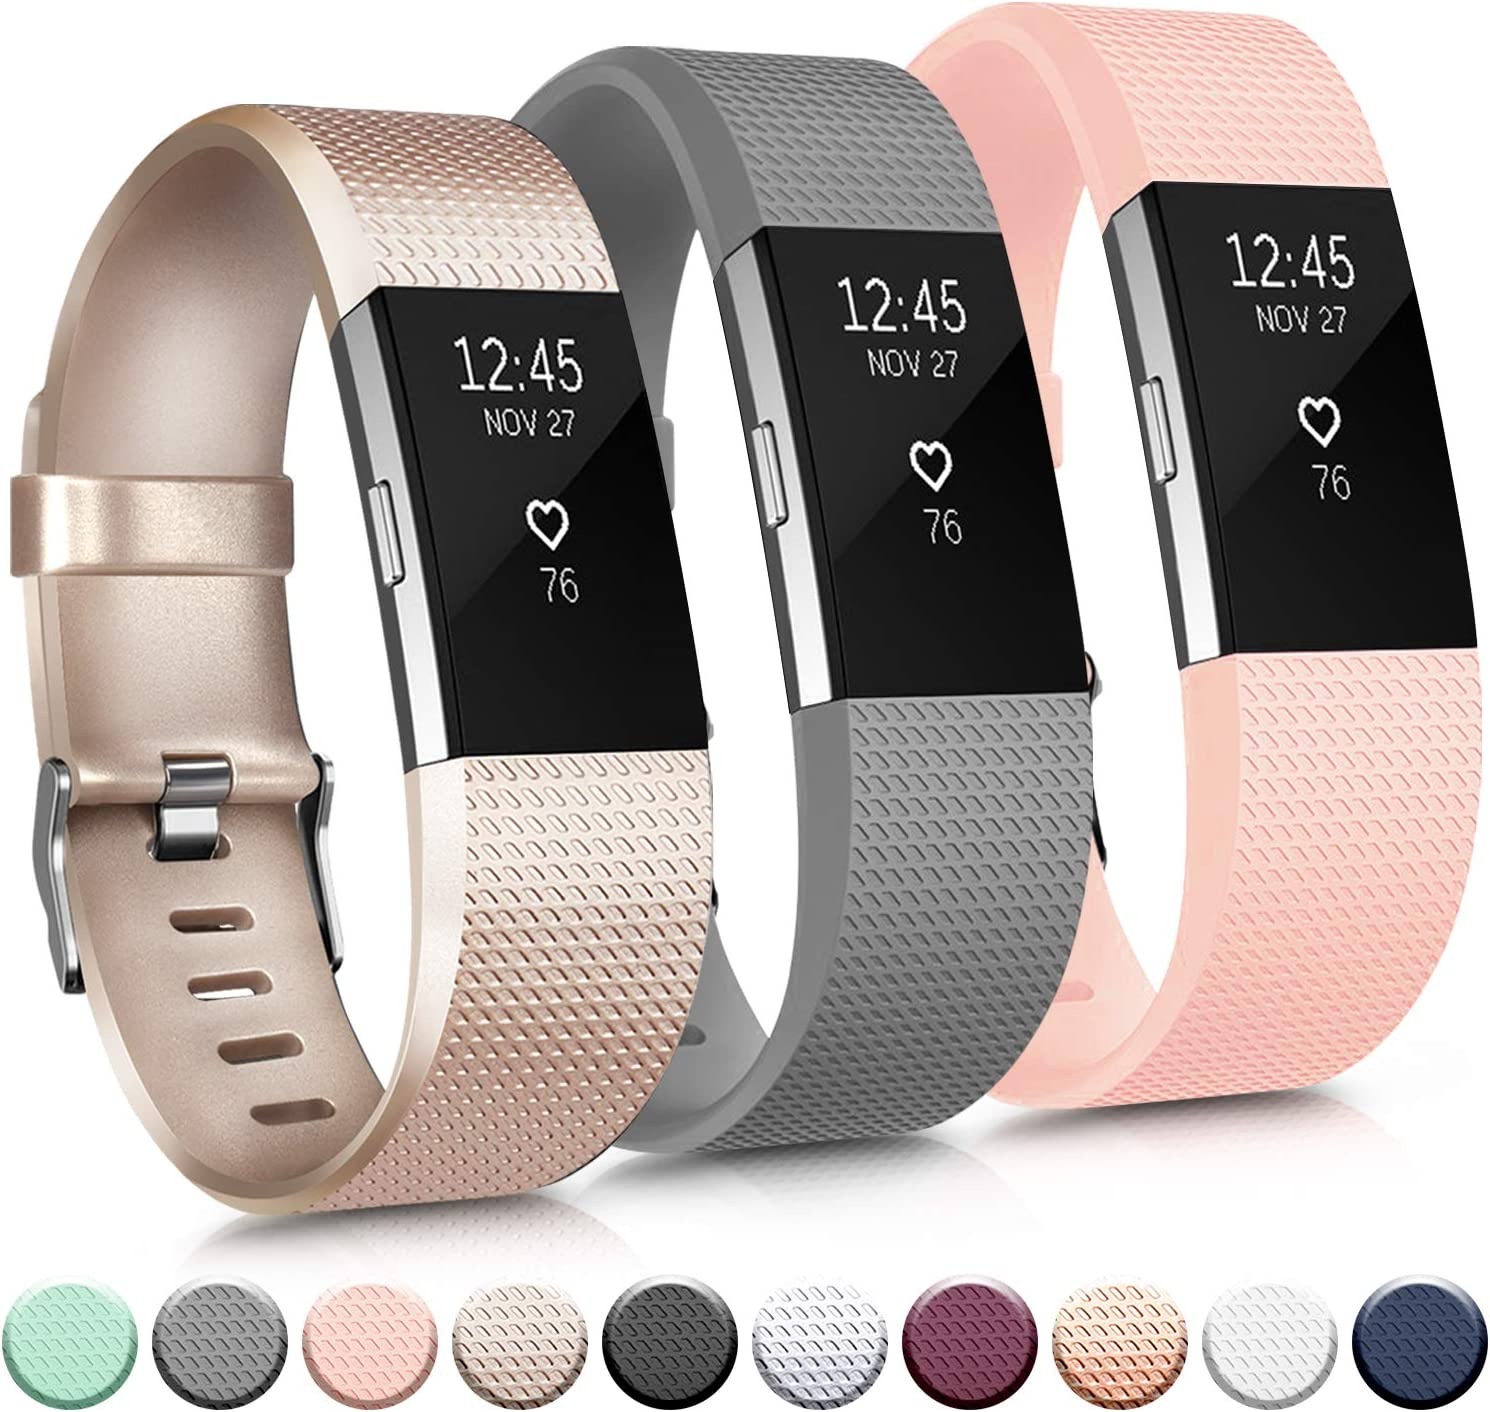 IEOVIEE Silicone Band Compatible with Fitbit Charge 2 Bands, Classic & Special Edition Soft Replacement Bands for Women Men Small Large (Small, 07 Gold+Grey+Pink)